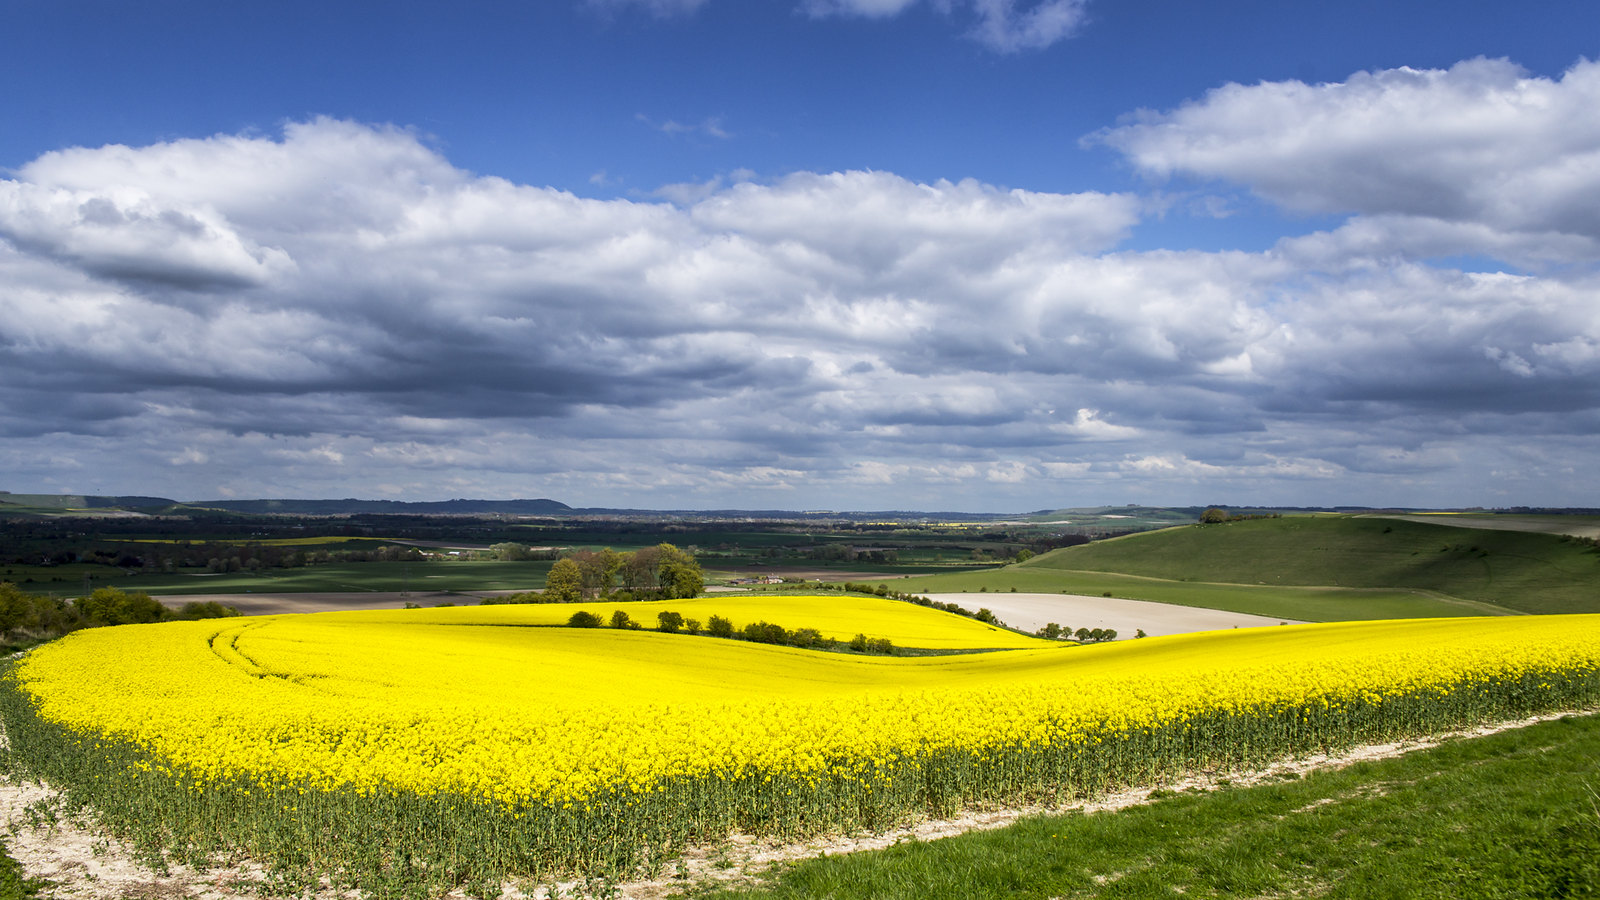 A field of oil seed rape on the side of a down above the Vale of Pewsey